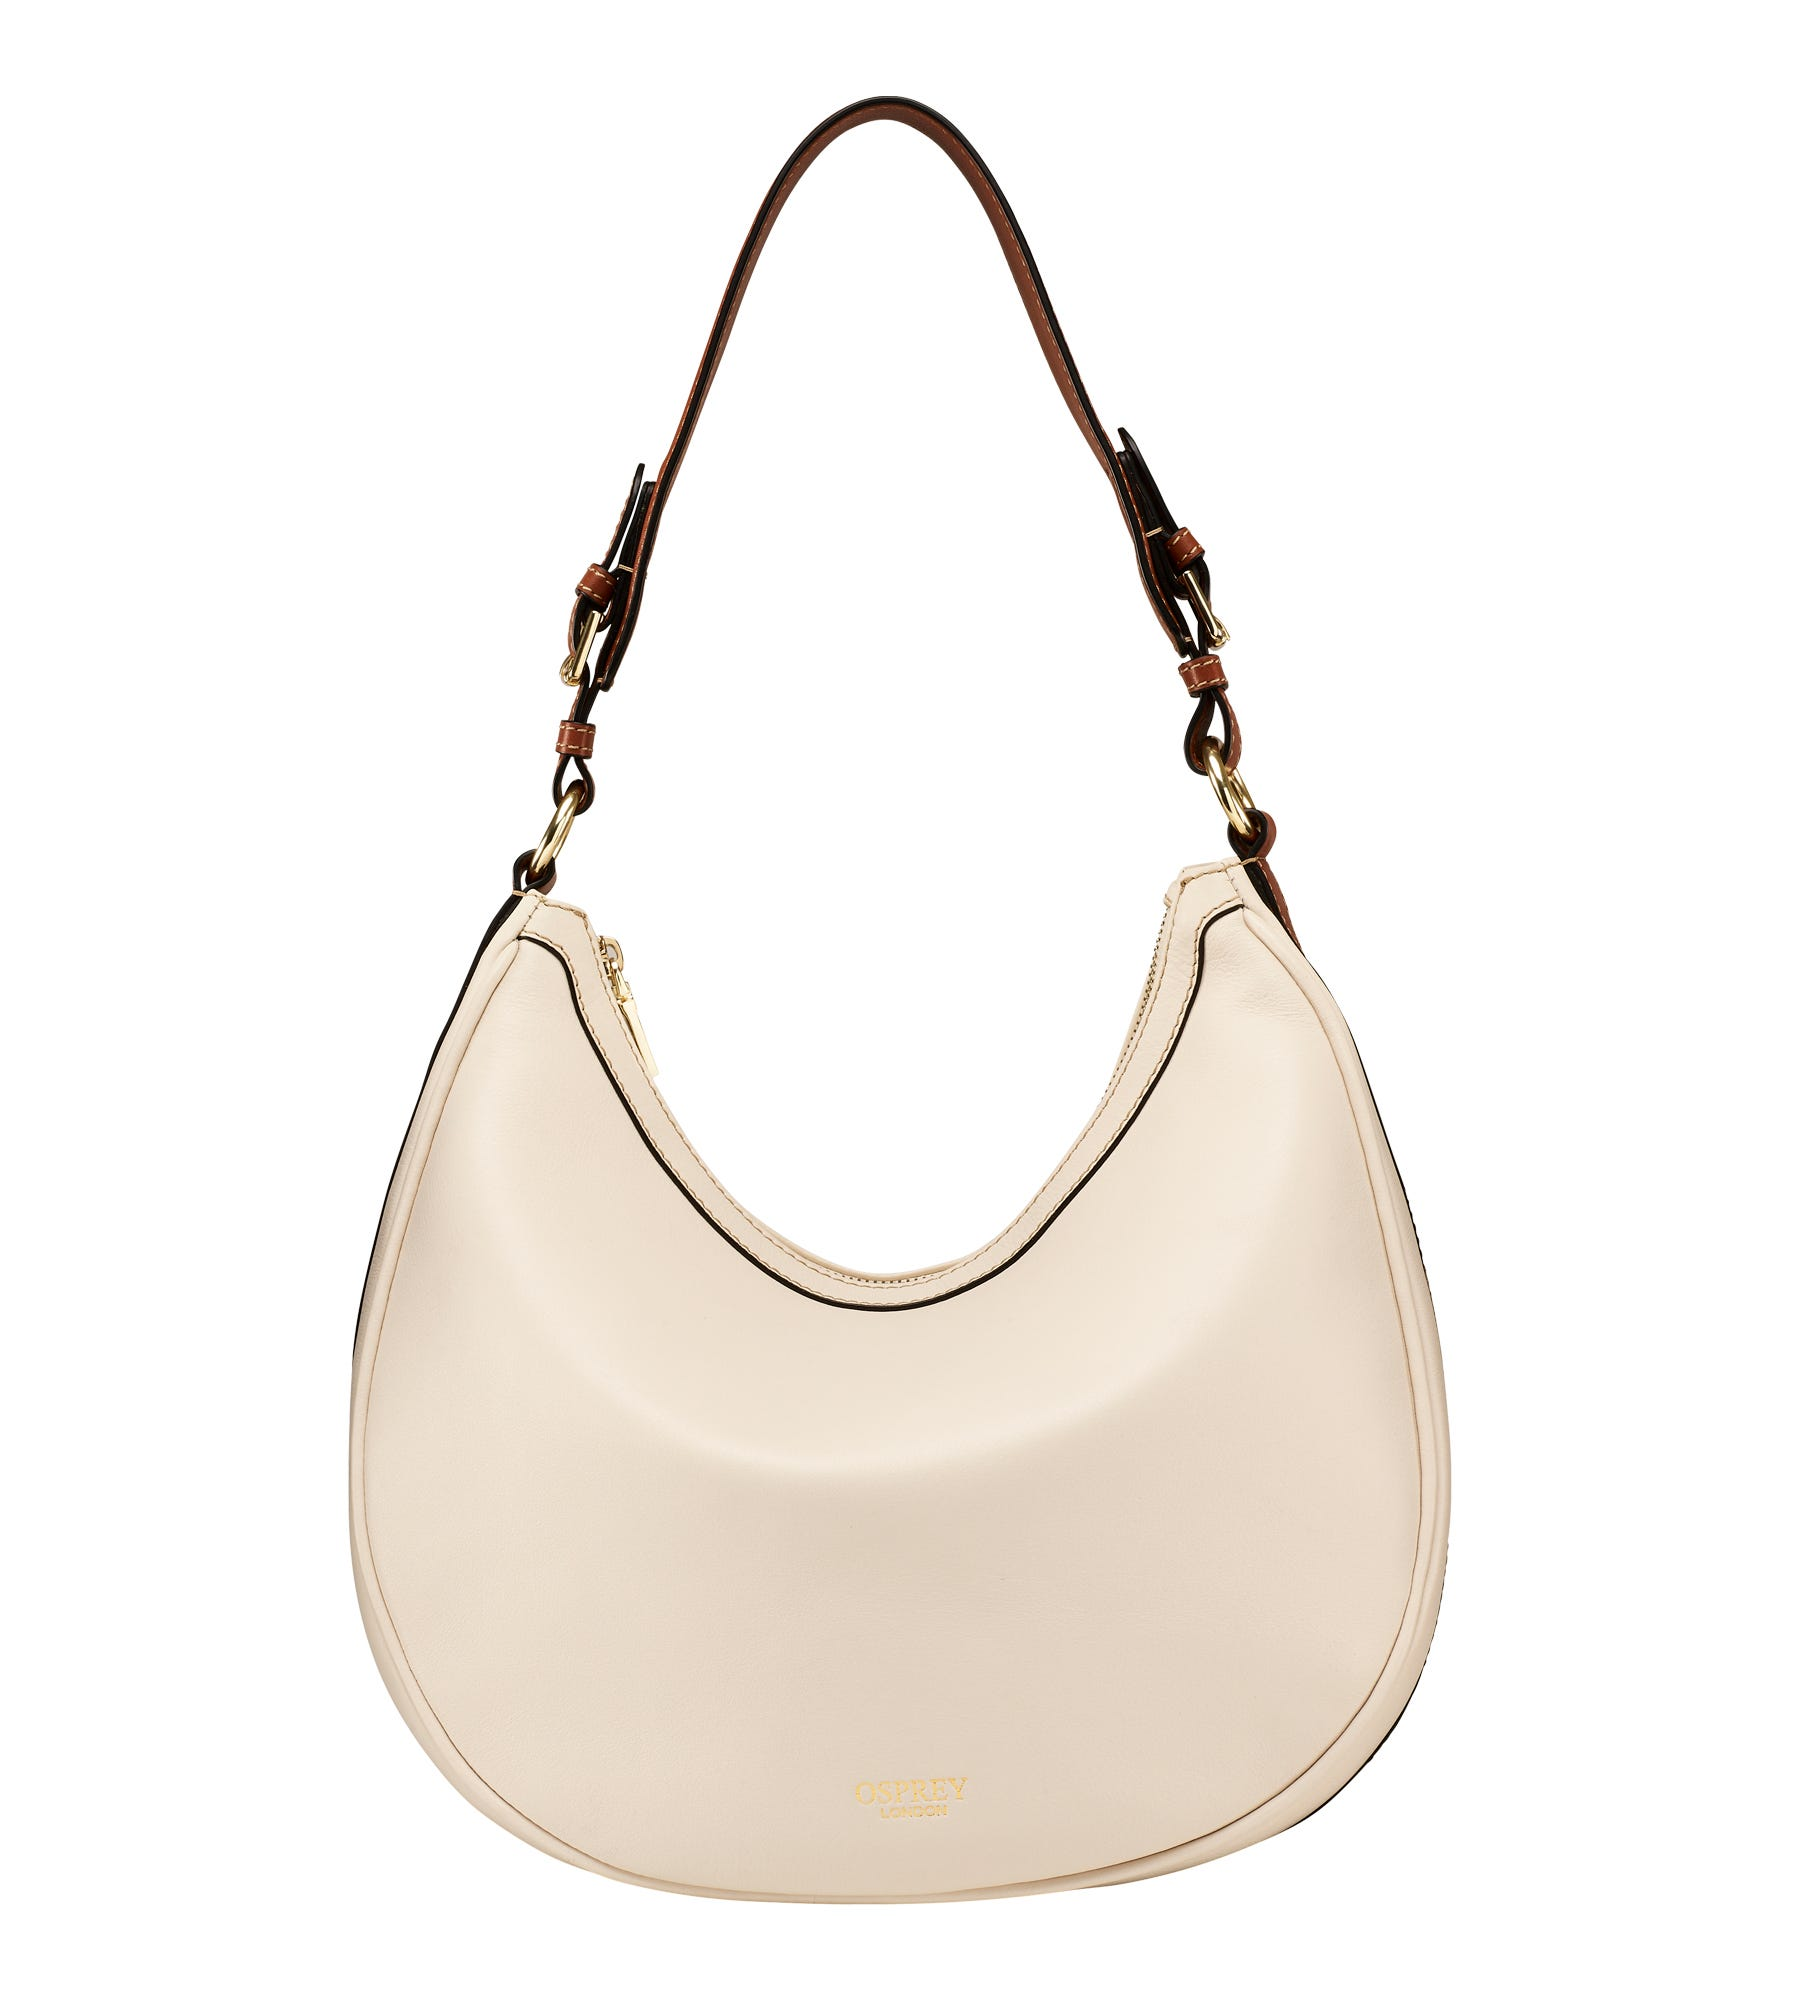 An image of The Brockwell Leather Hobo